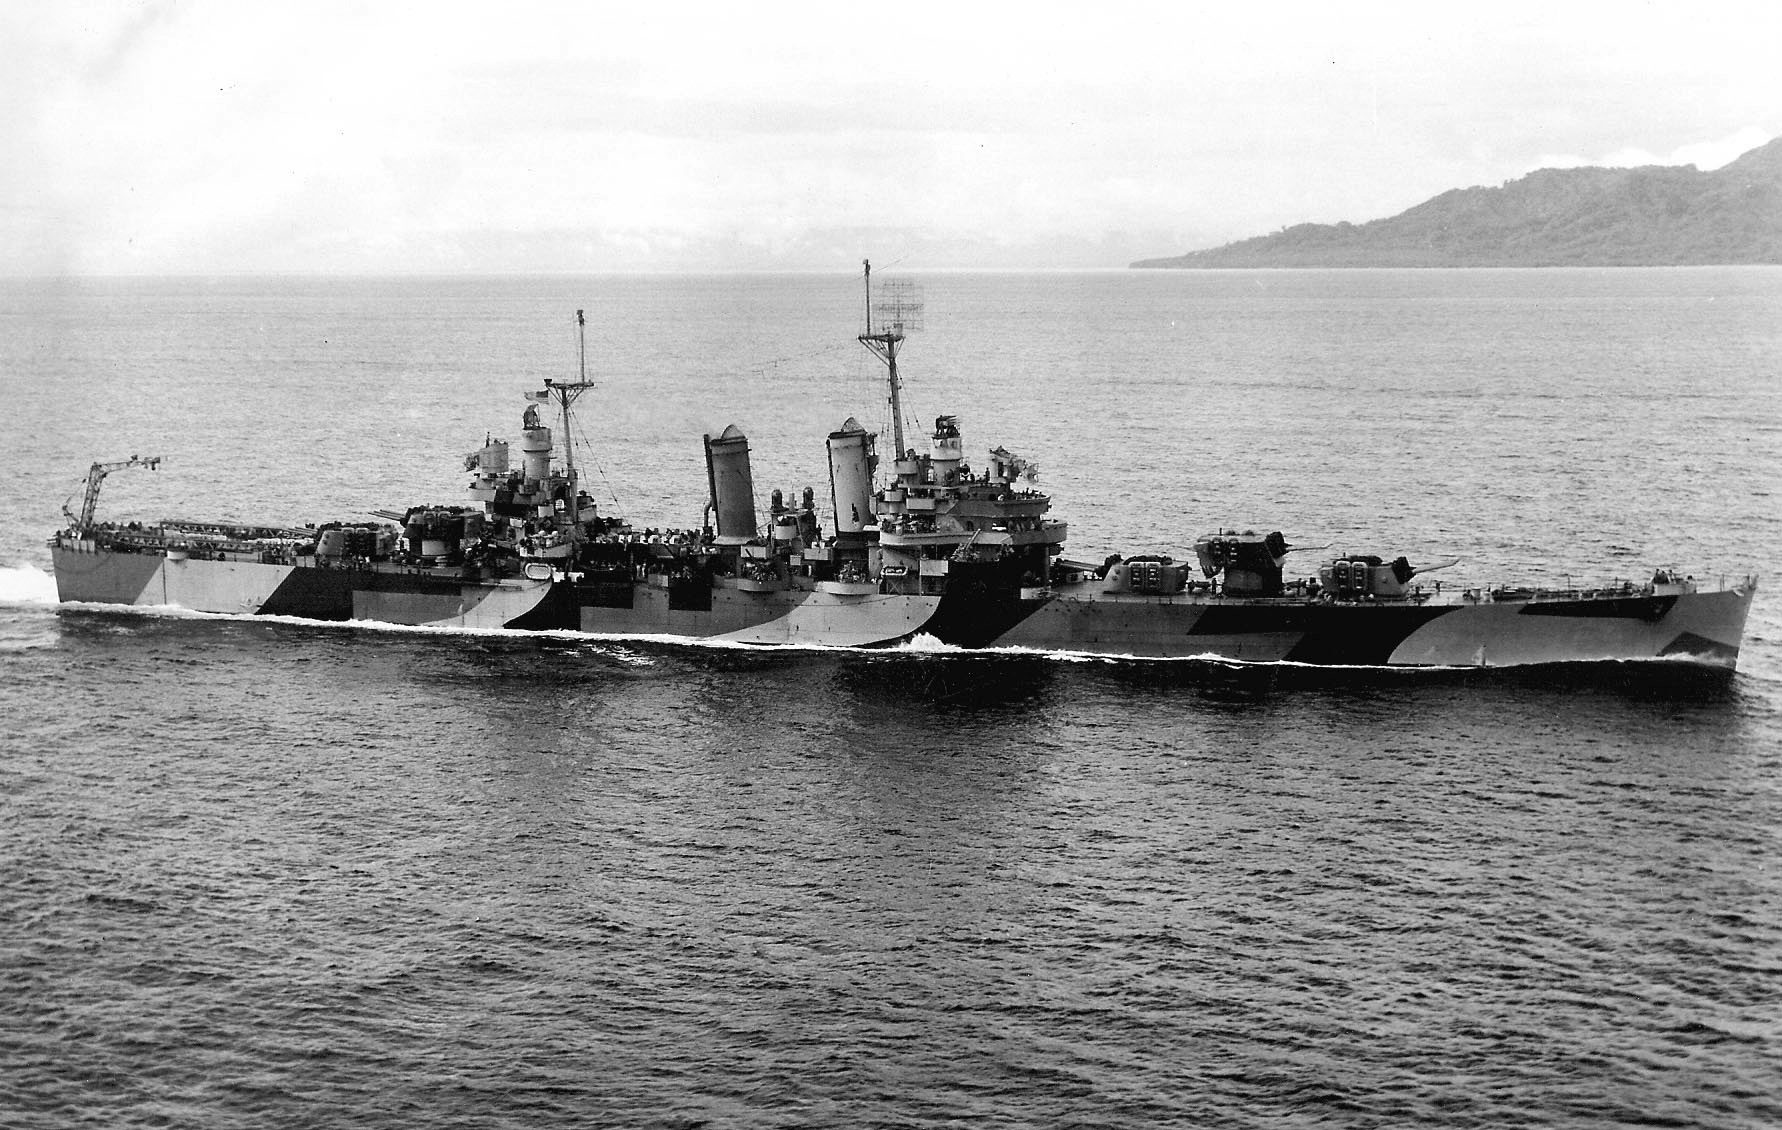 https://upload.wikimedia.org/wikipedia/commons/2/26/USS_Honolulu_%28CL-48%29_underway_in_1944.jpeg